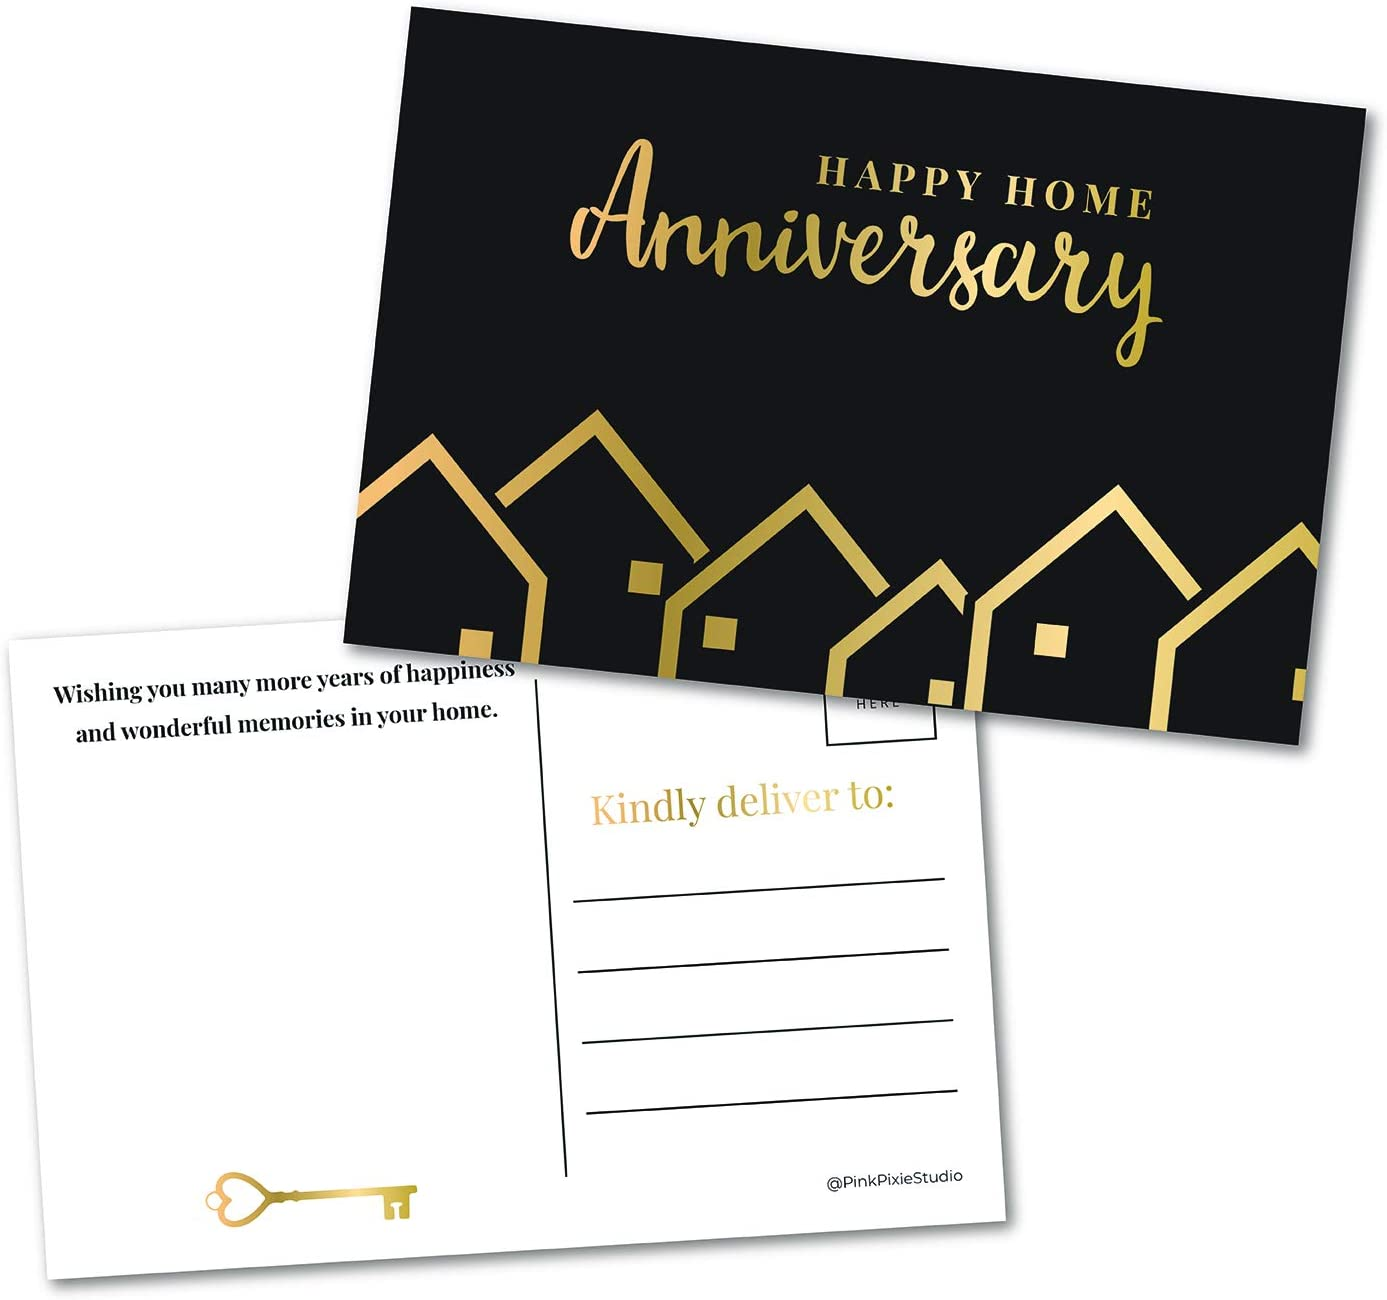 50 Happy Home Anniversary Realtor Postcards, Bulk Blank House Greetings, Real Estate Agent Thank You Notes, Houseiversary Card, Welcome Home Stationery Gifts for Clients (2 Tone Gold Print not Foil)